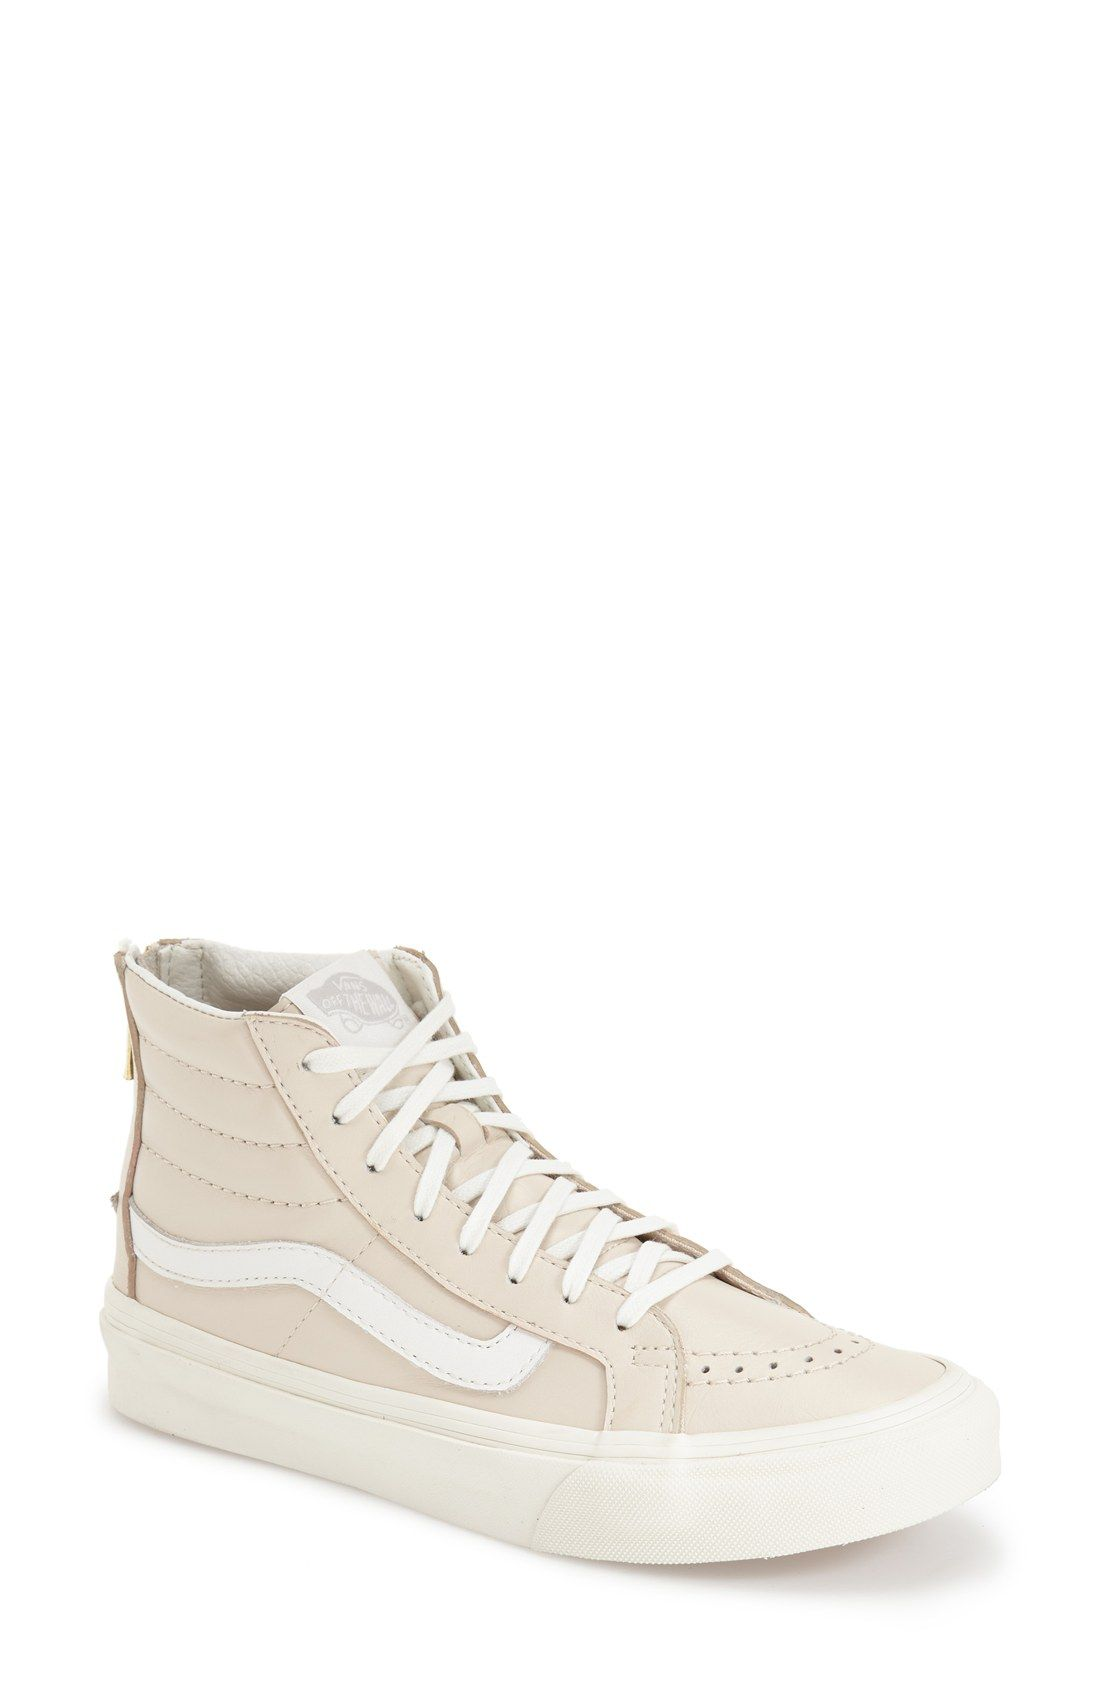 new concept 18e7b e5649 Vans 'Sk8-Hi Slim' High Top Sneaker (Women) Beige- 9.5 | My ...